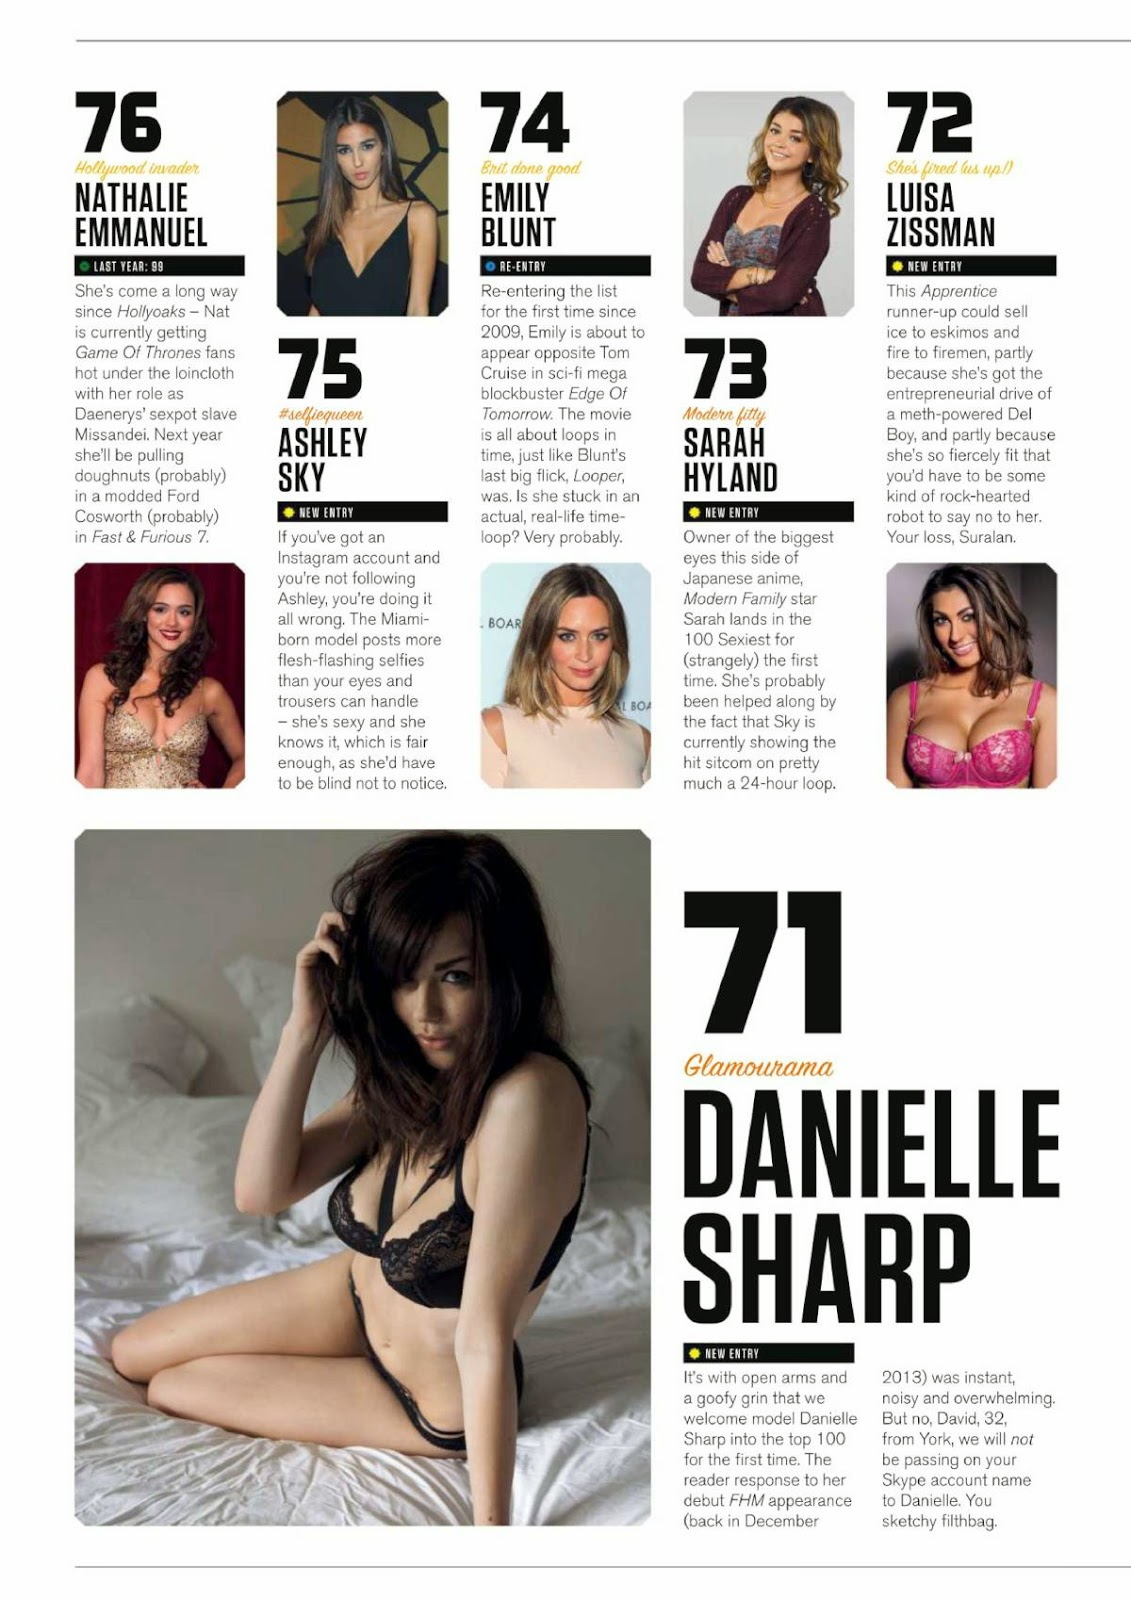 Fhm magazine s sexiest women in the world — photo 4